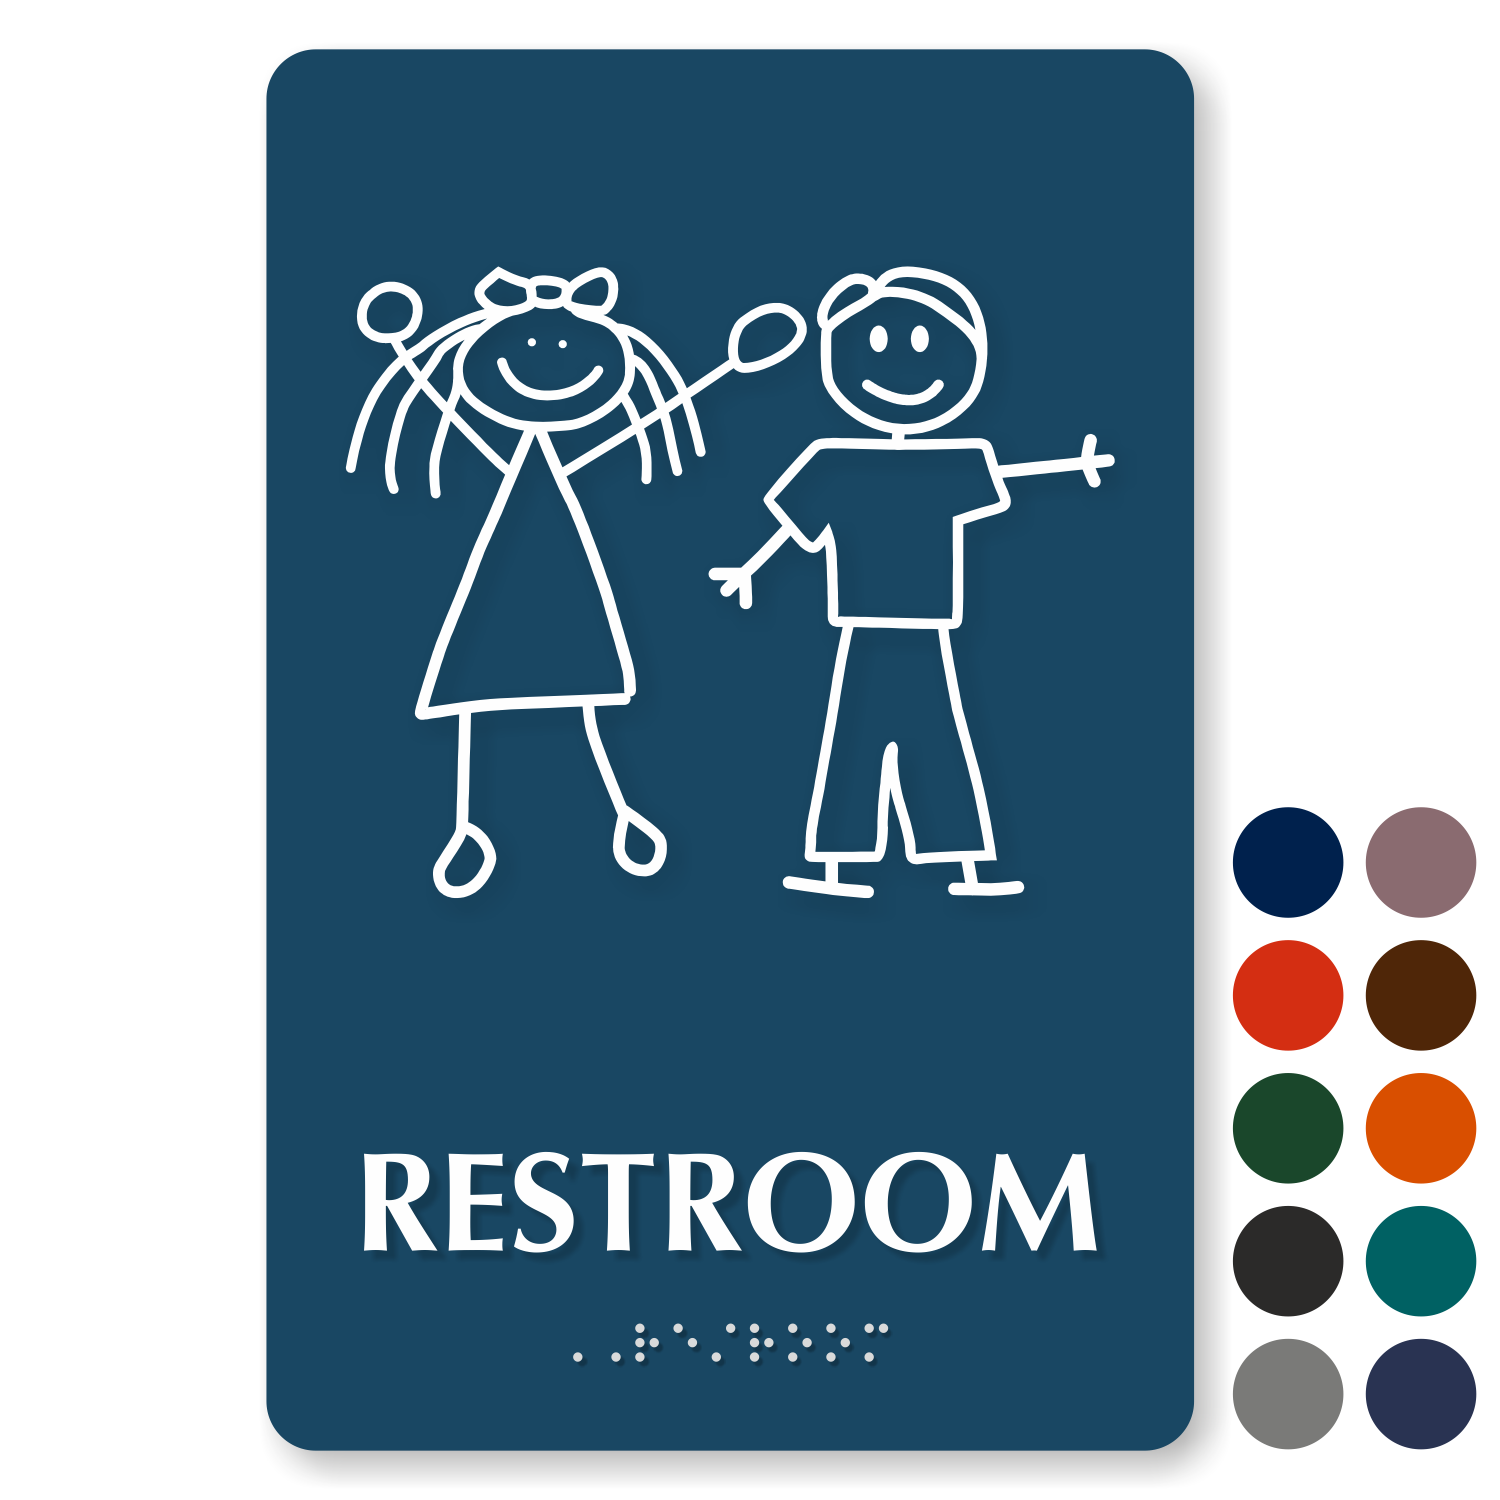 kids bathroom sign. Contemporary Kids Images Funny Mens Room Symbol Throughout Kids Bathroom Sign S